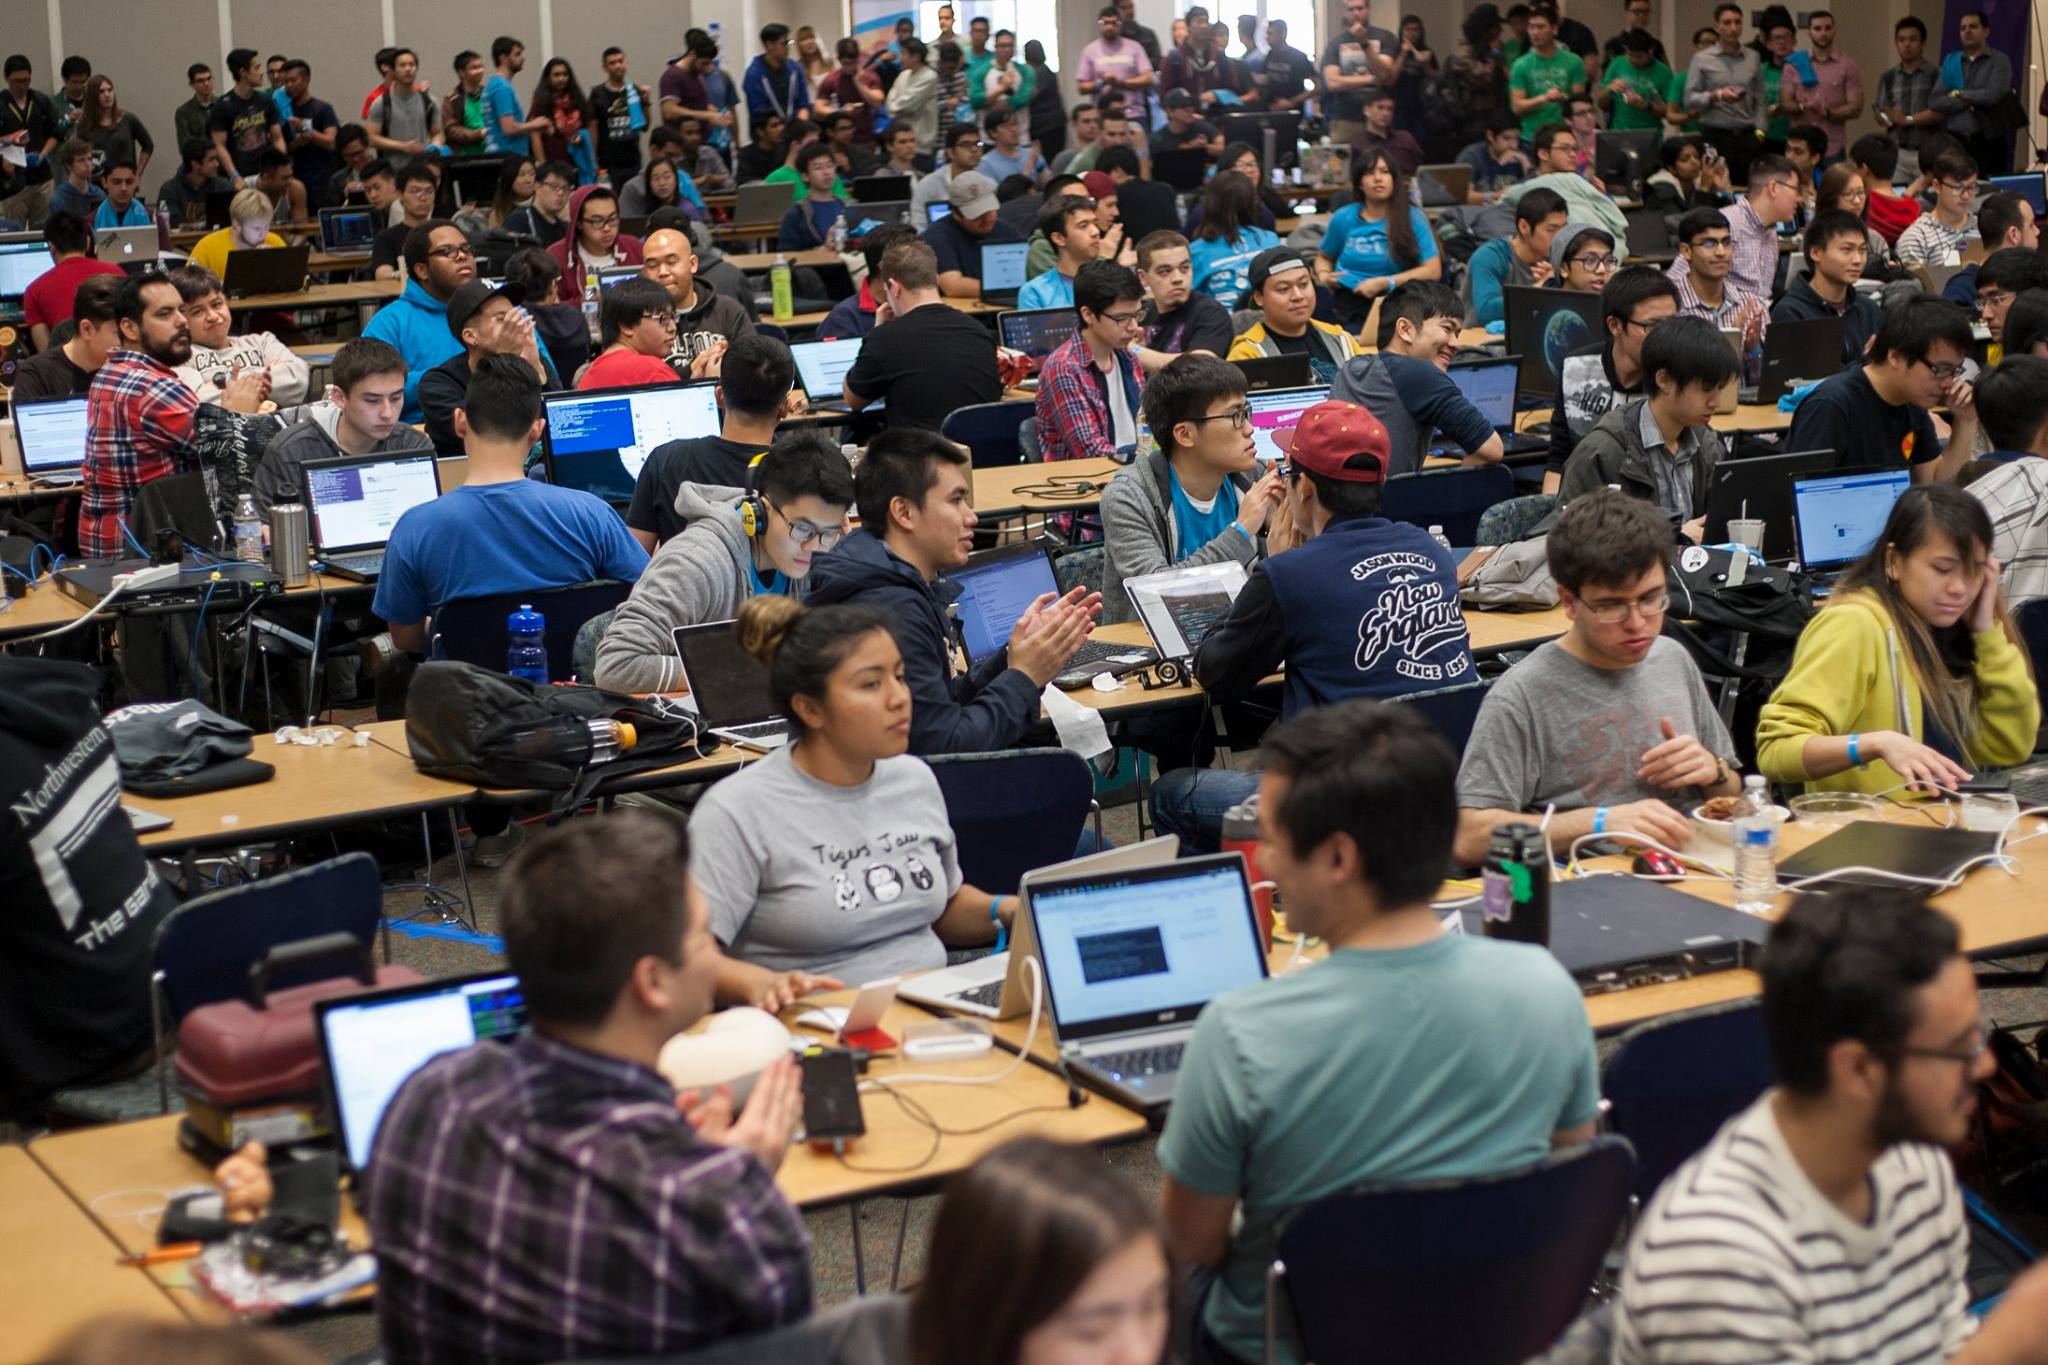 Students at the HackPoly hackathon